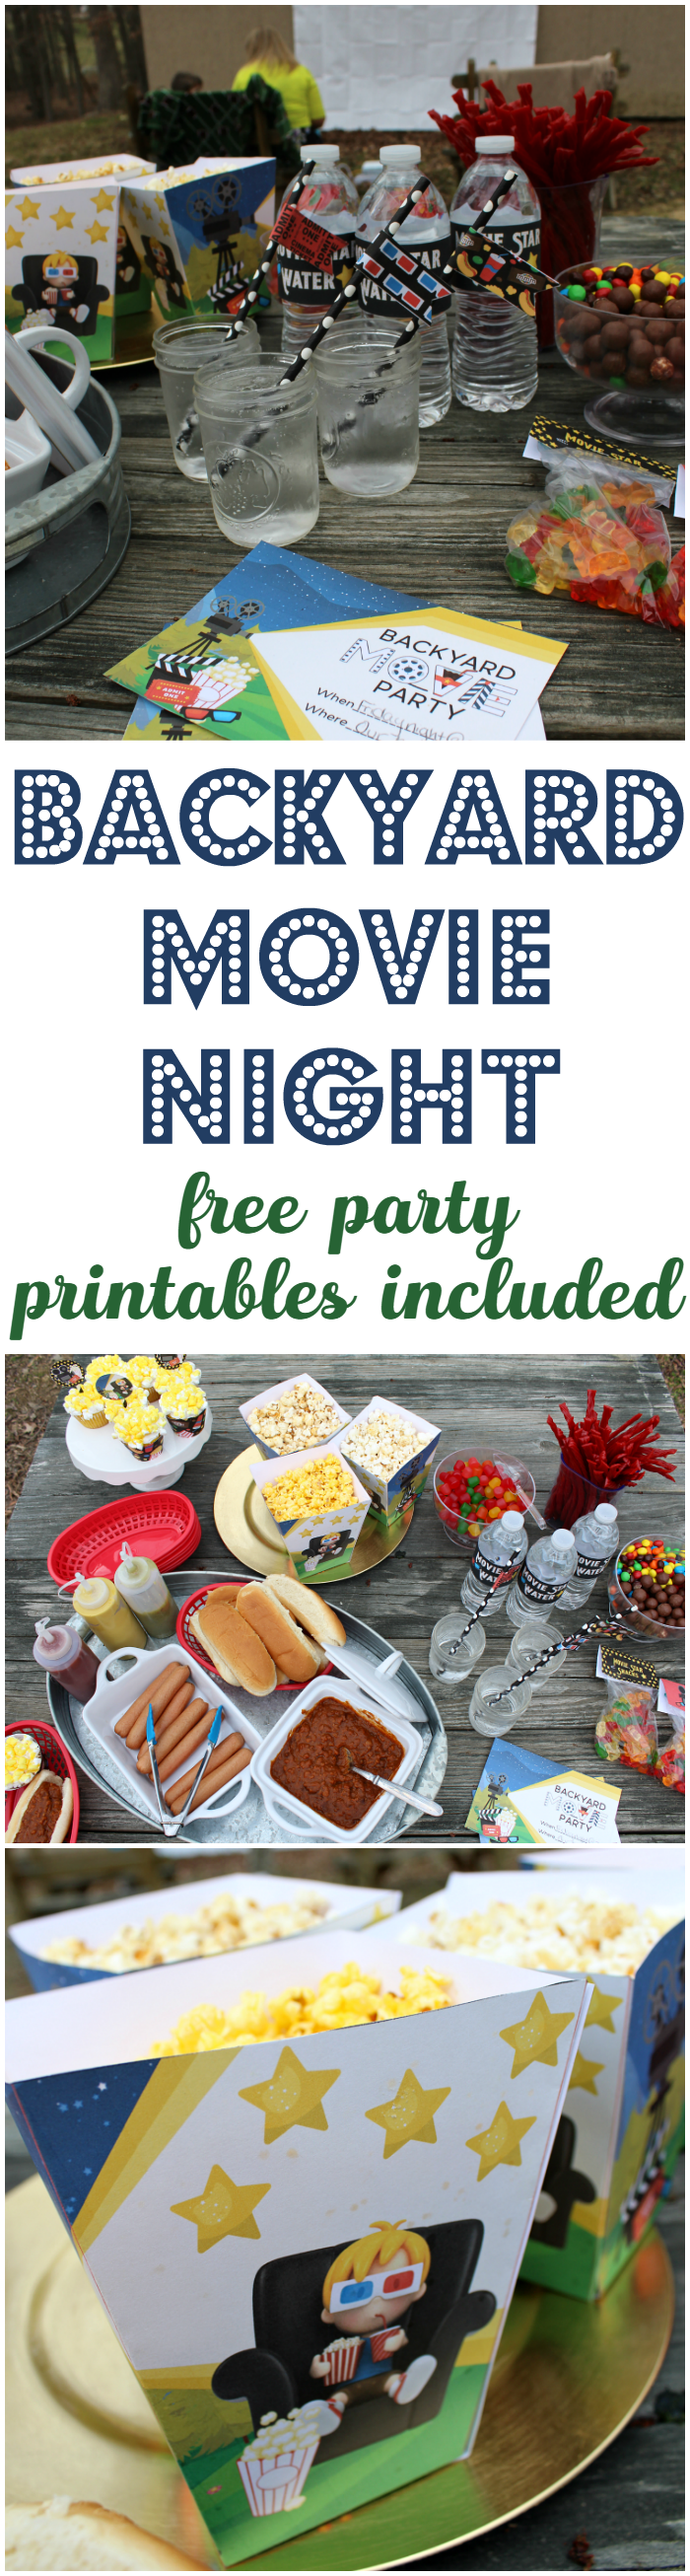 A backyard movie party is a great summer party theme! Grab these adorable free printables for all your party decorations!